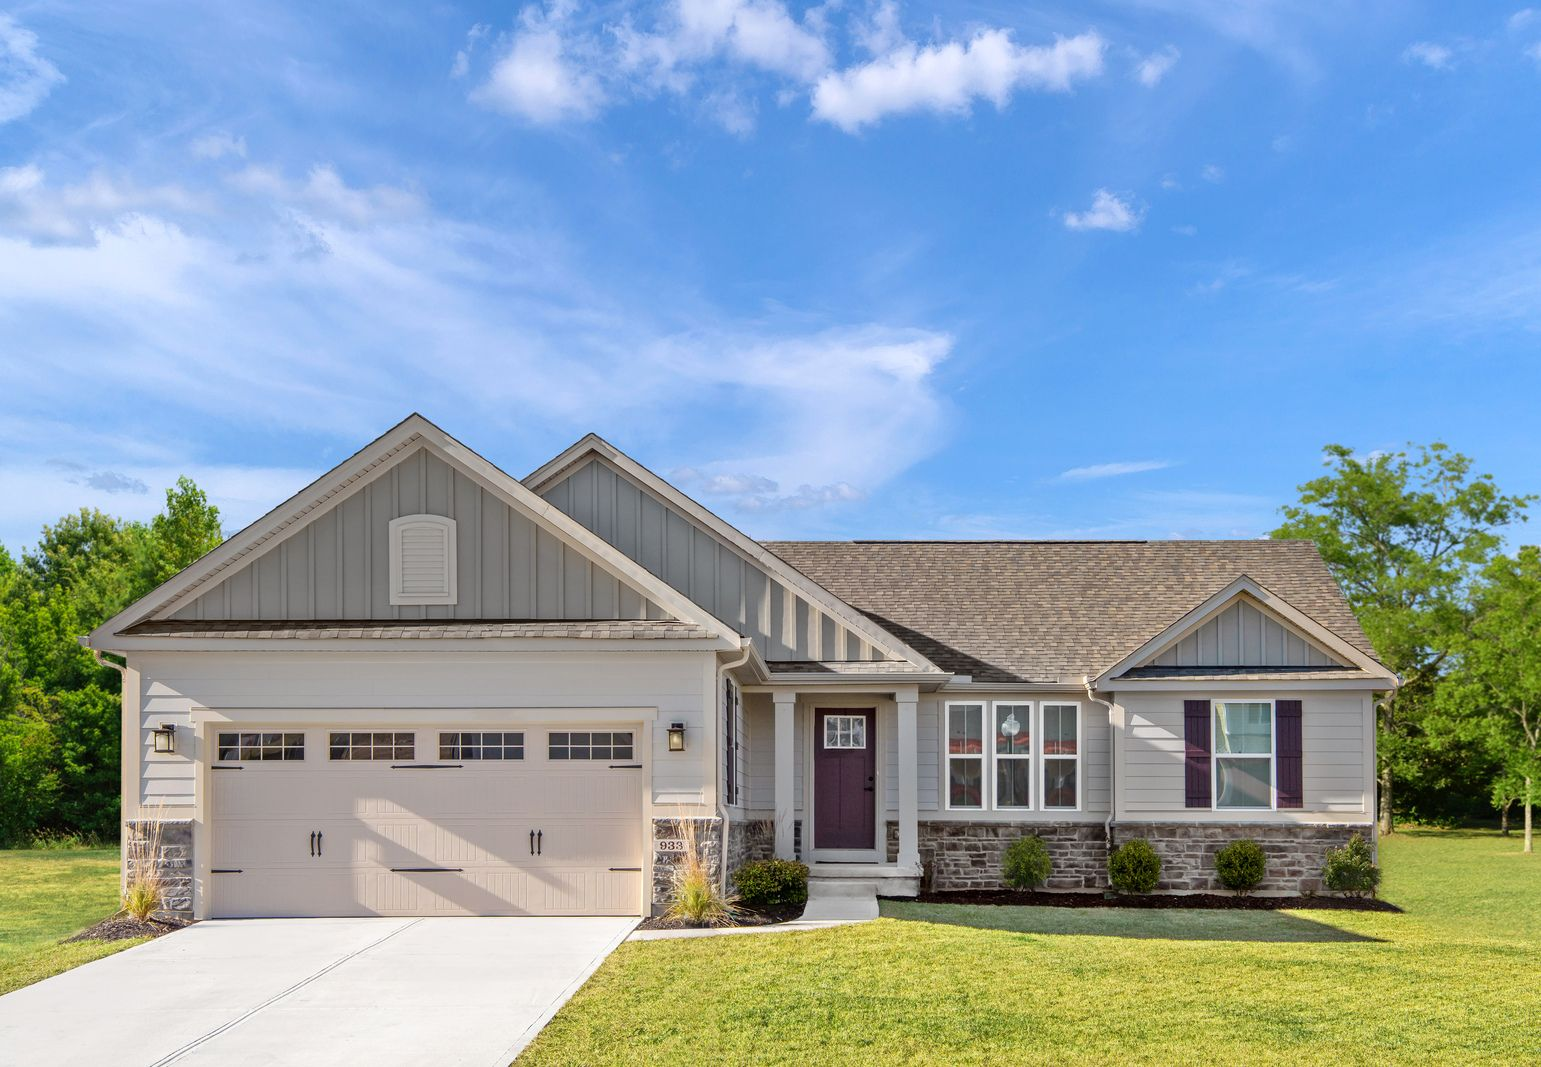 Aviano Plan At Willow Brook Farm In Loveland Oh By Ryan Homes